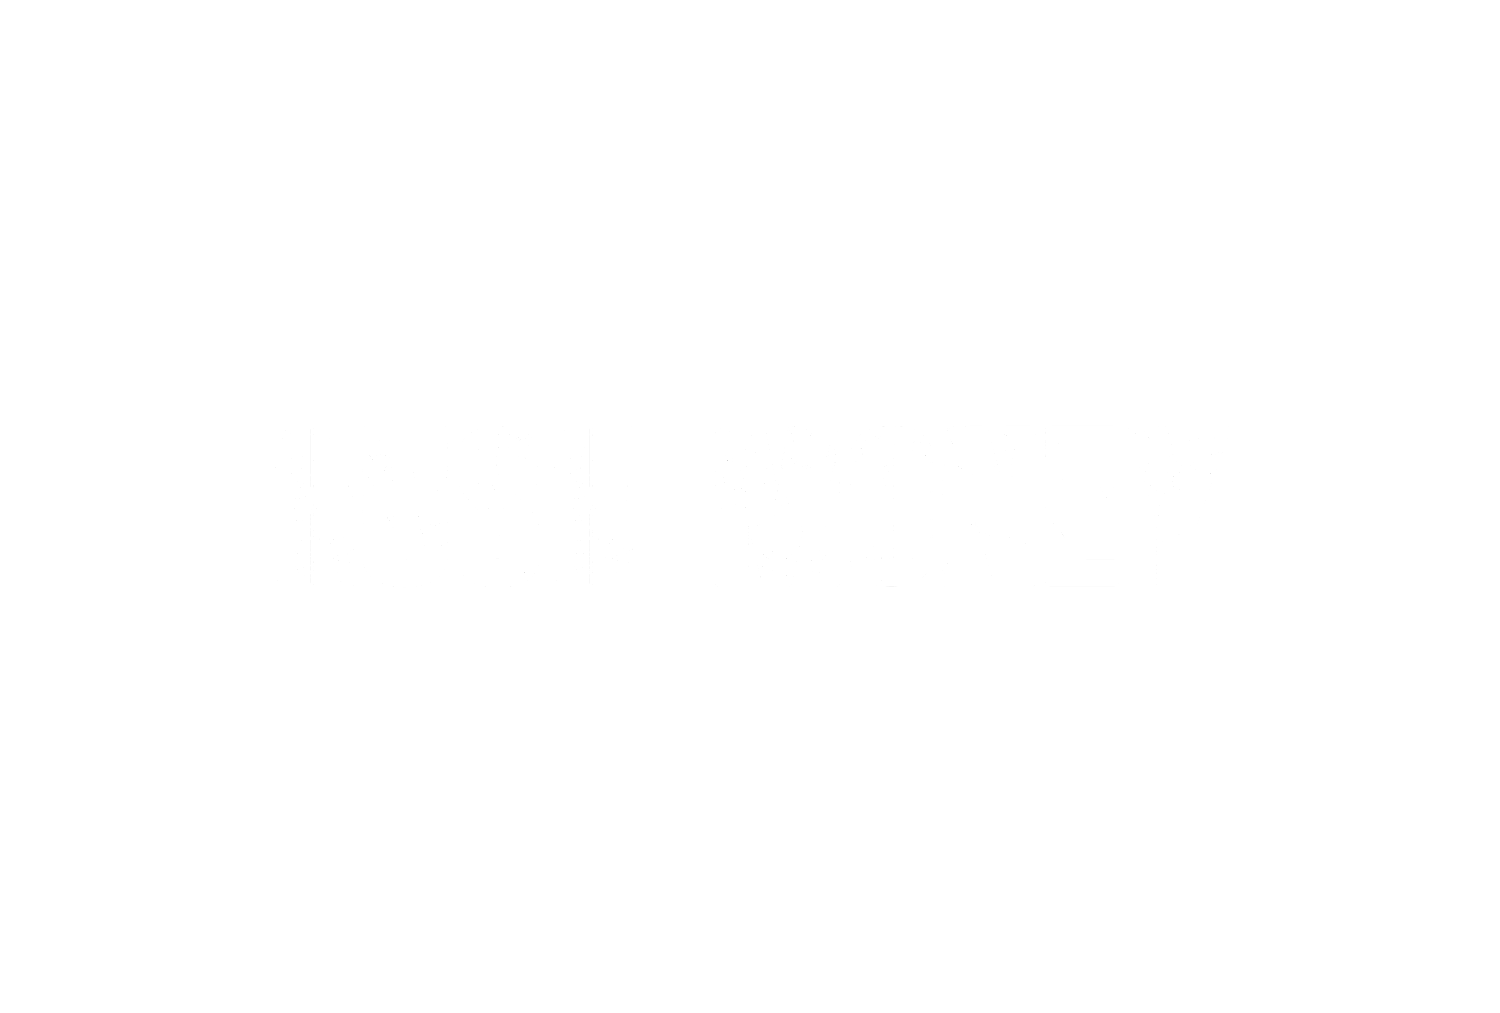 Hush Money Film